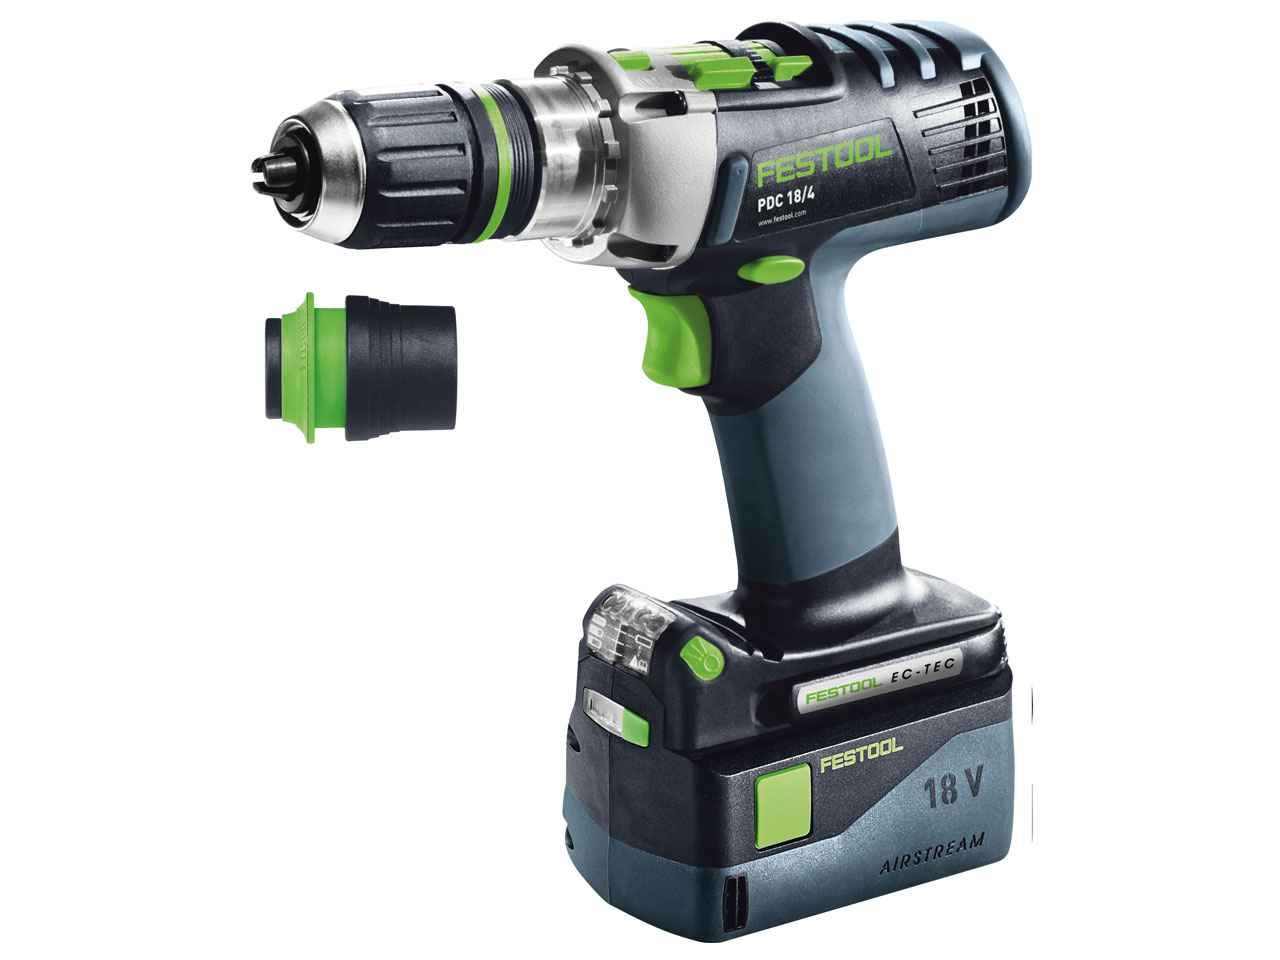 festool pdc 18 4 li 5 2 plus sca gb 18v 2 x cordless percussion drill systainer 2 df. Black Bedroom Furniture Sets. Home Design Ideas